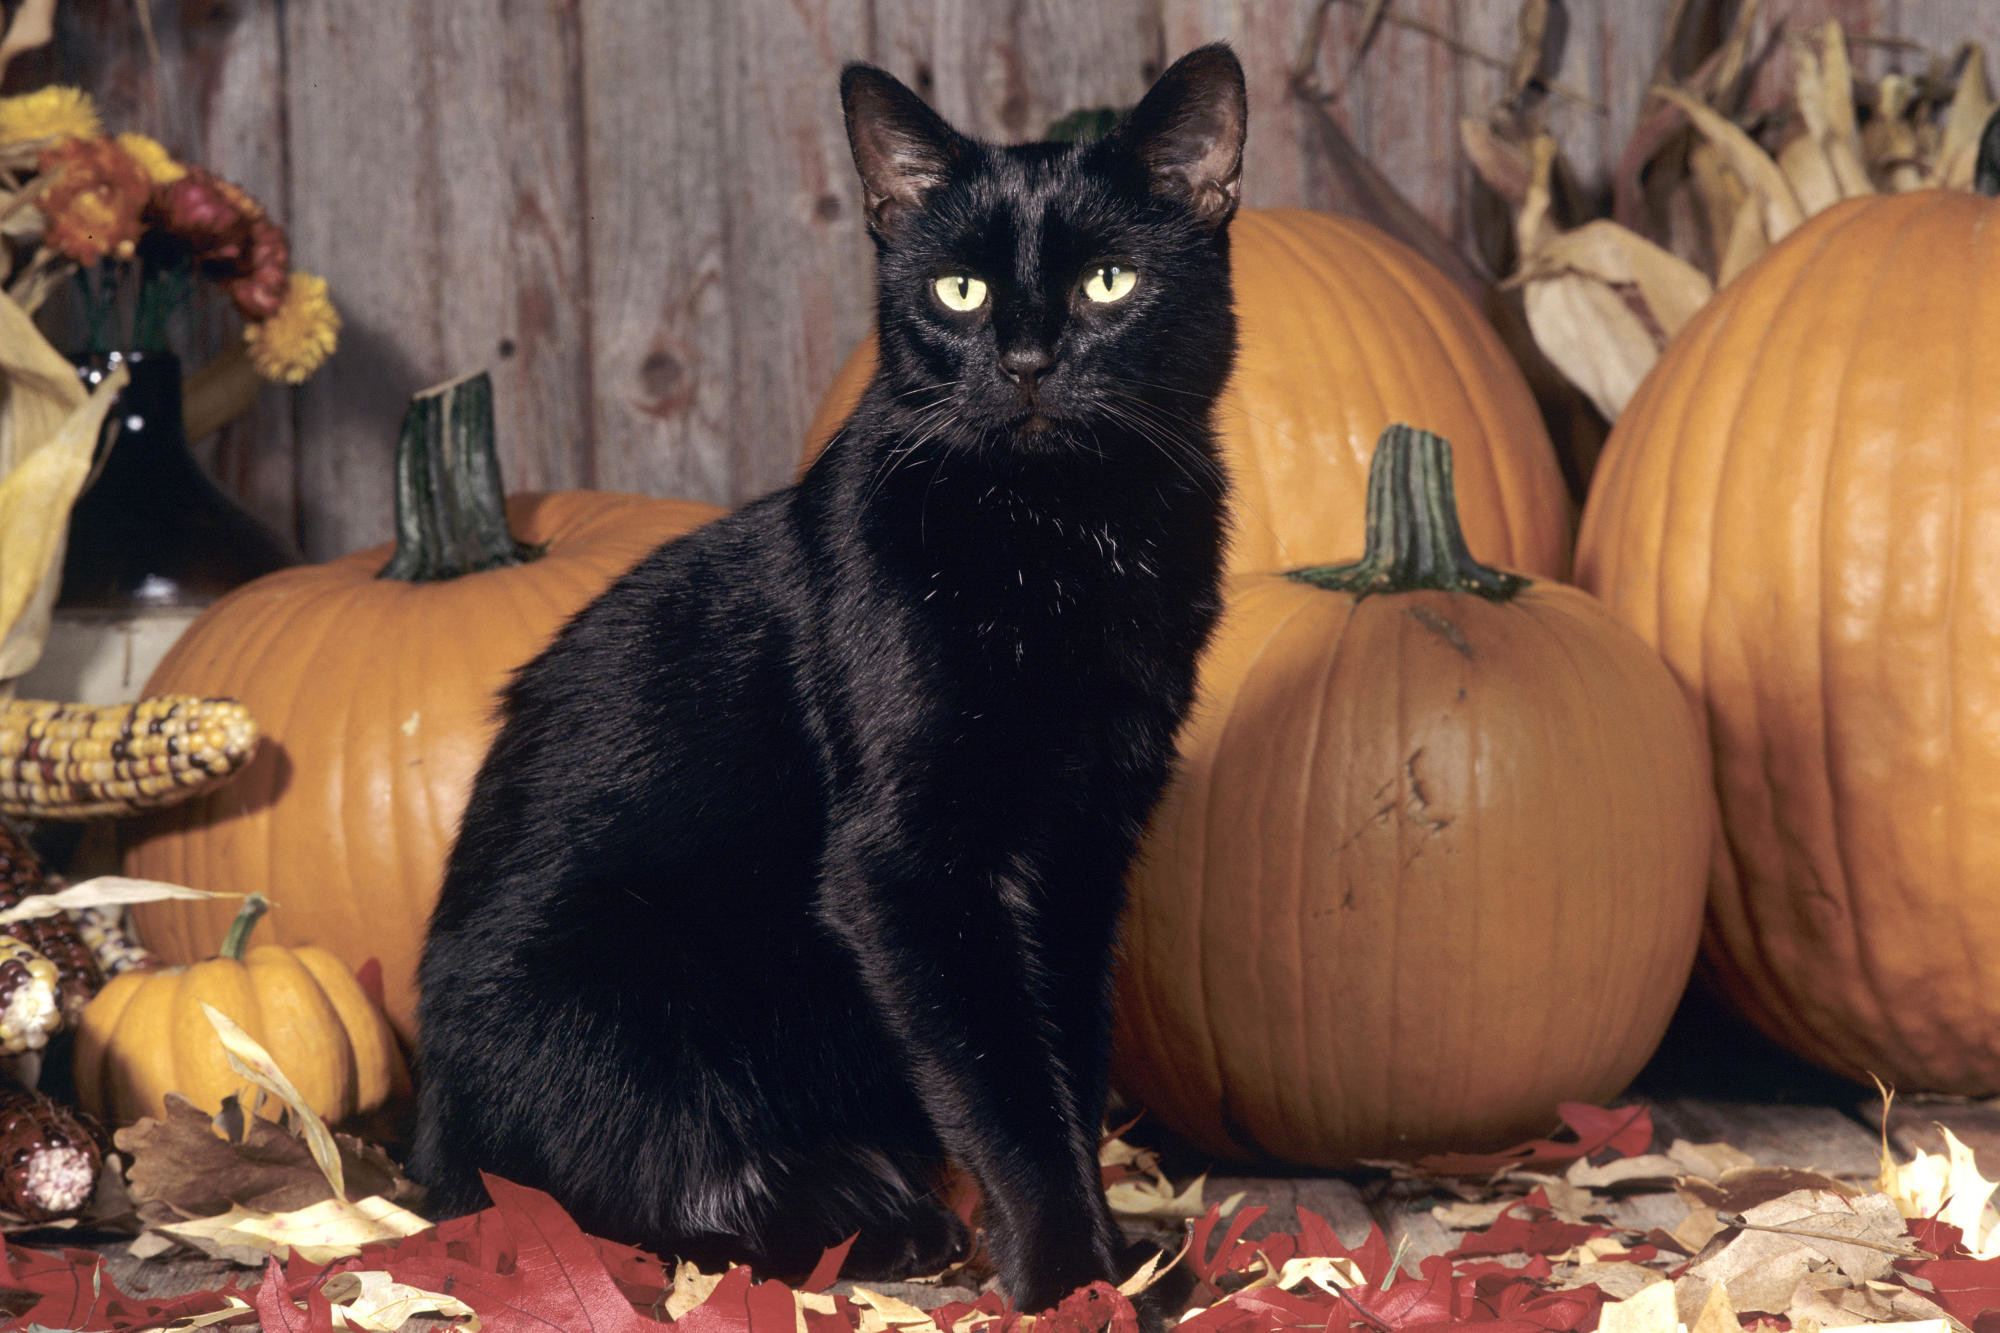 Autumn kitty black halloween leaves pumpkin photo 2000×1333